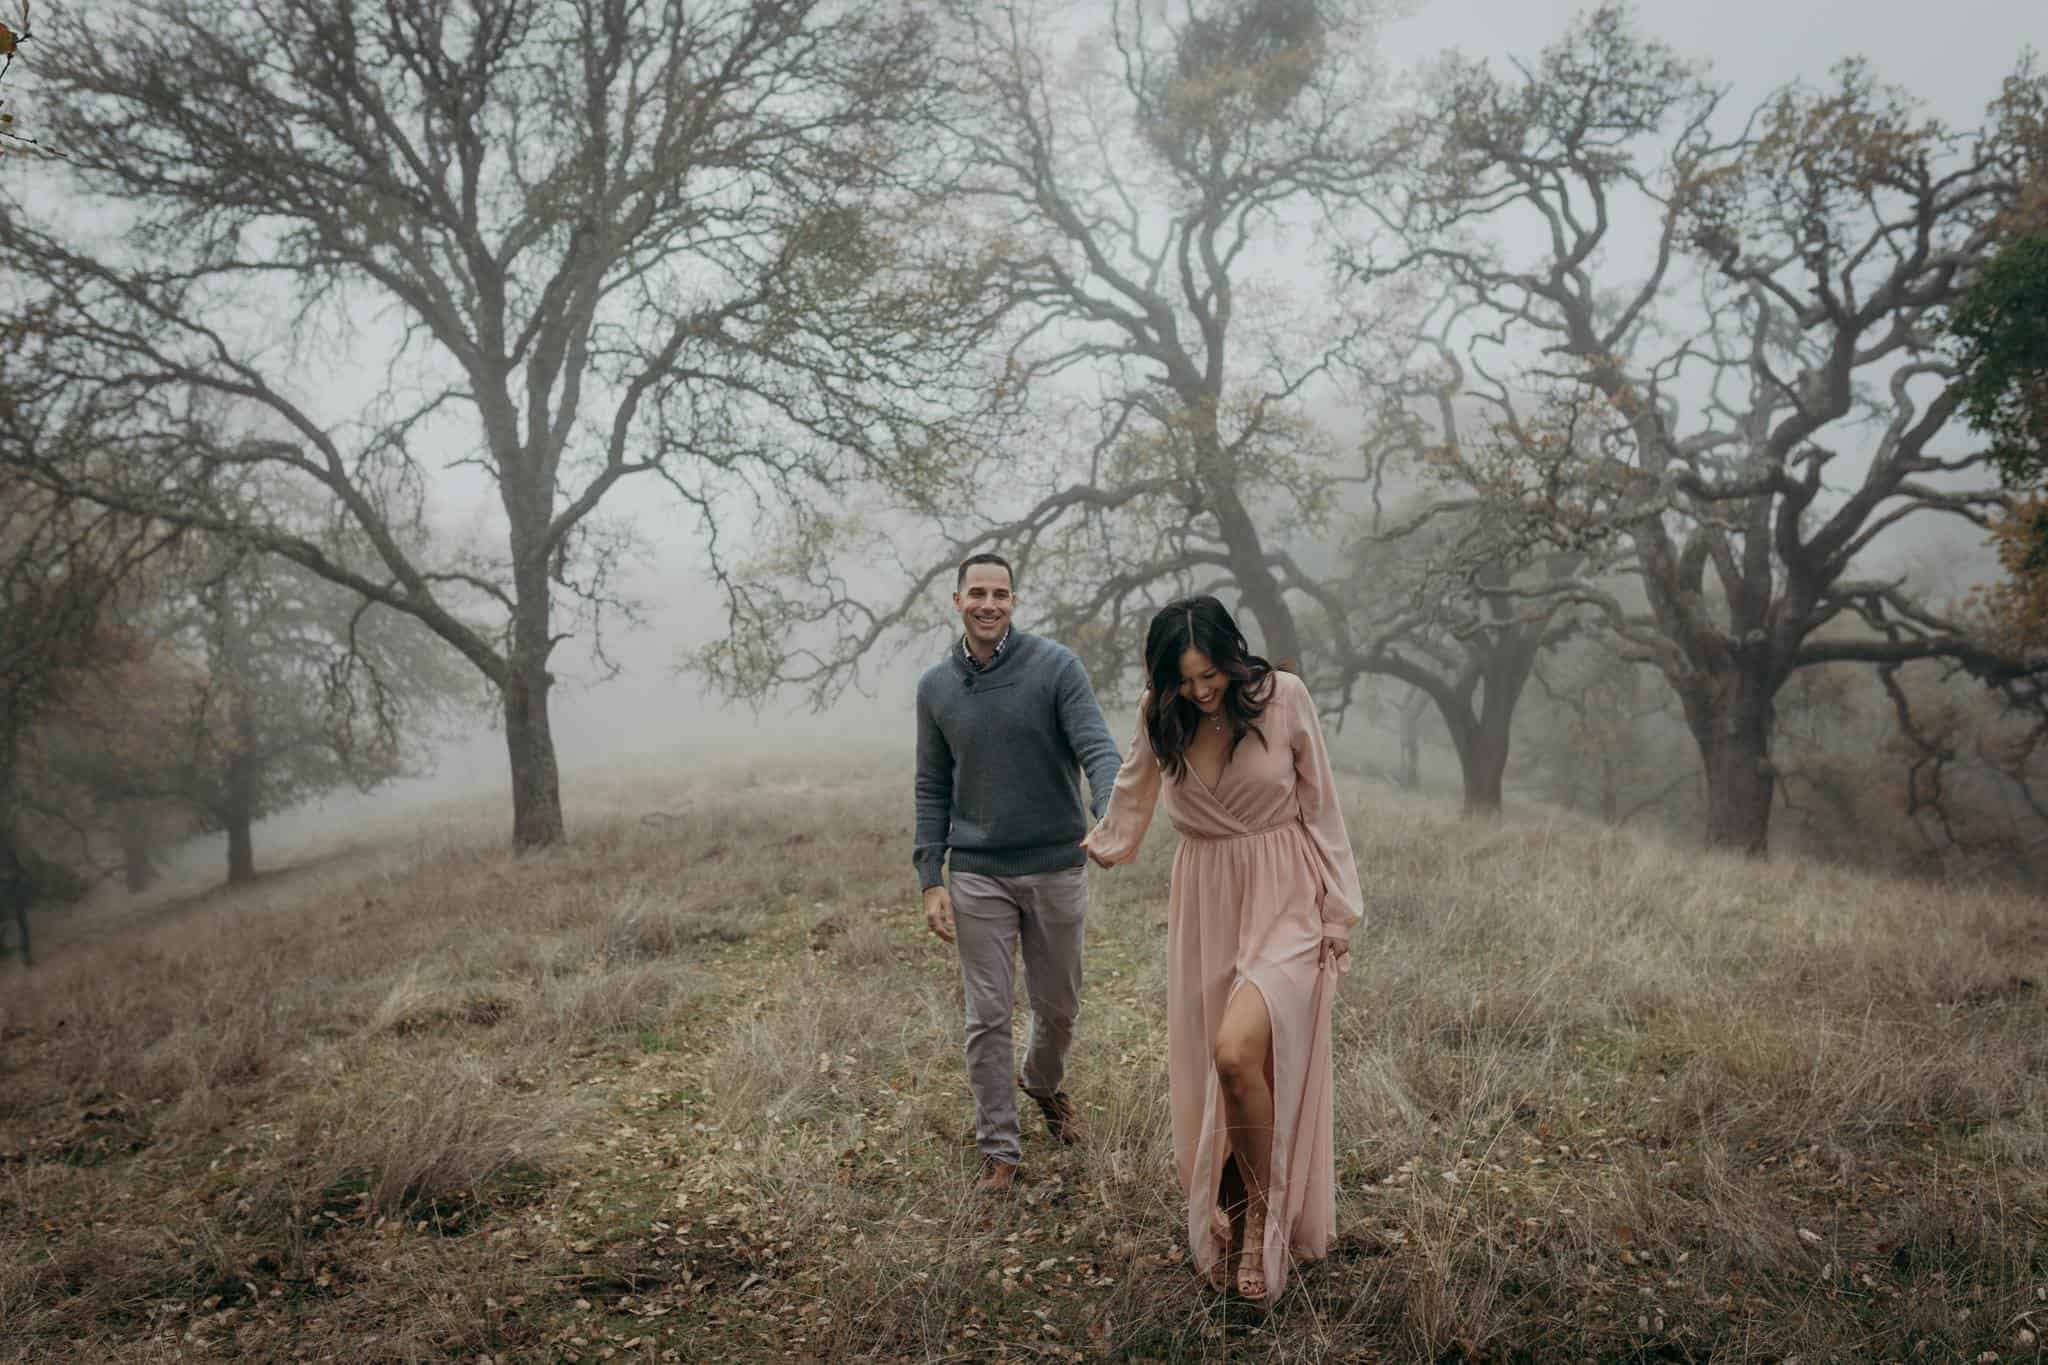 A couple walking in a foggy field surrounded by trees